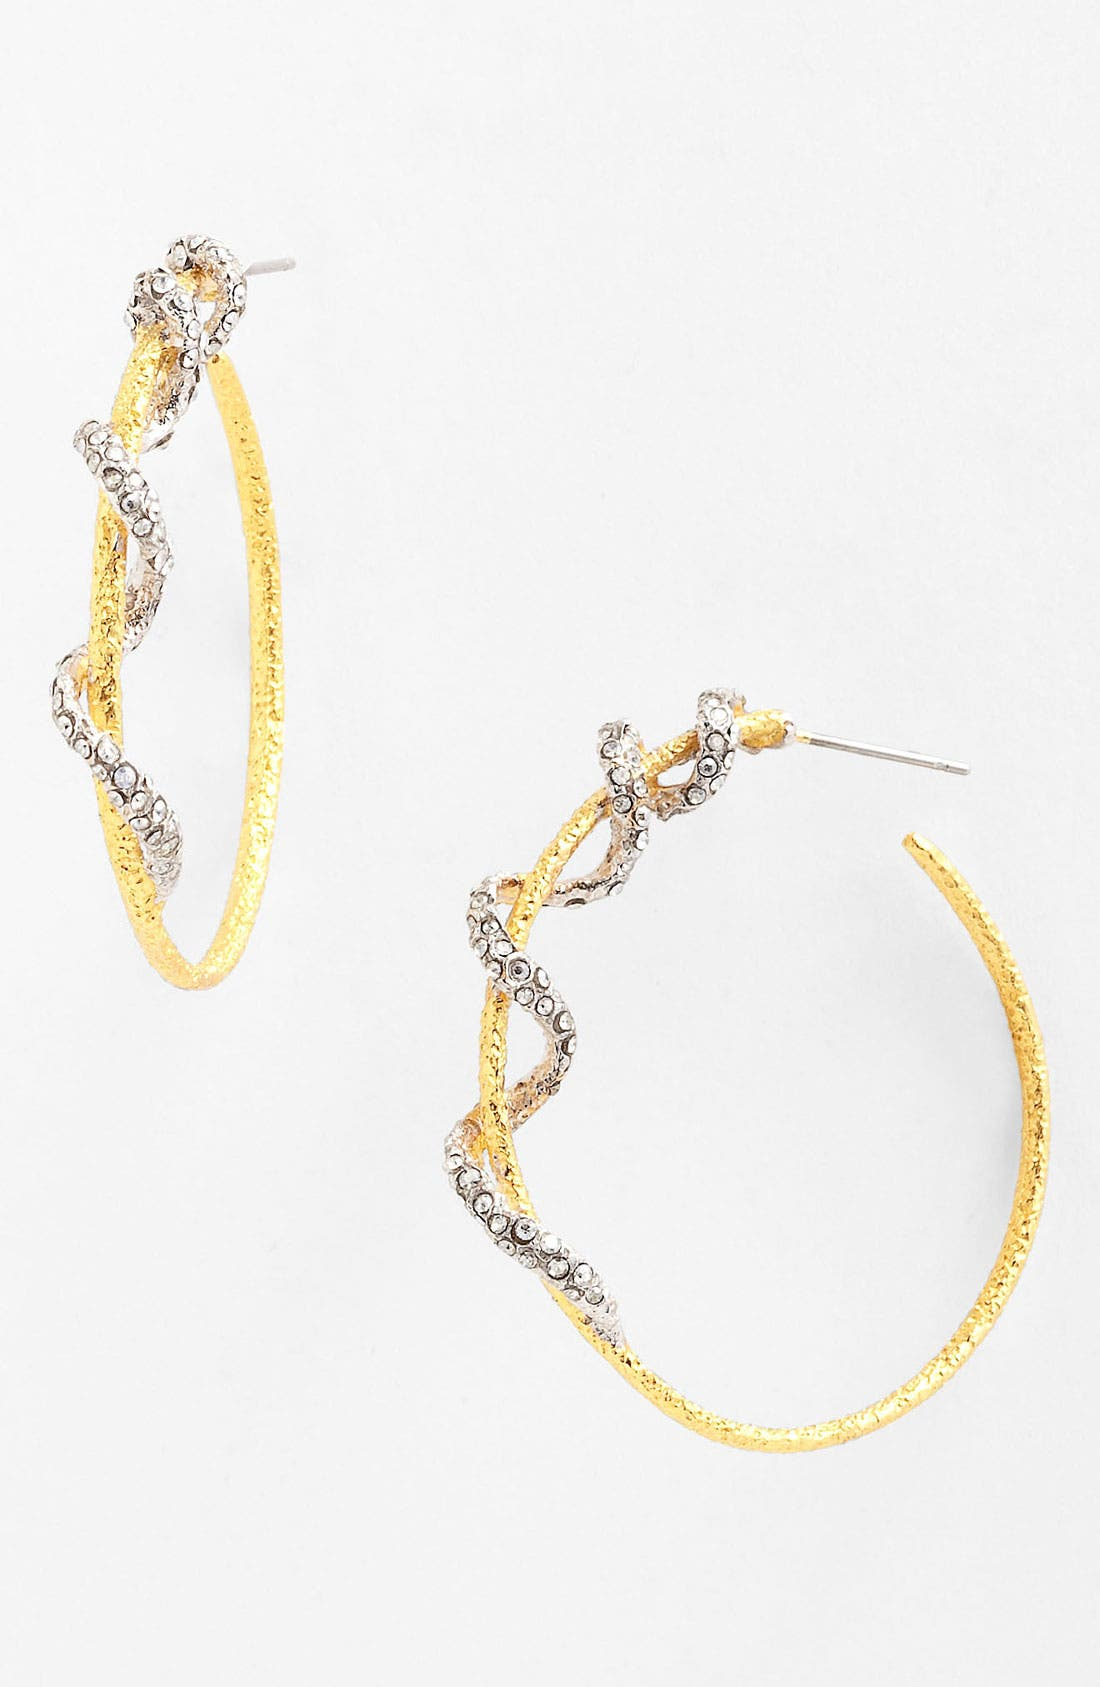 Main Image - Alexis Bittar 'Elements - Mauritius' Twisted Vine Hoop Earrings